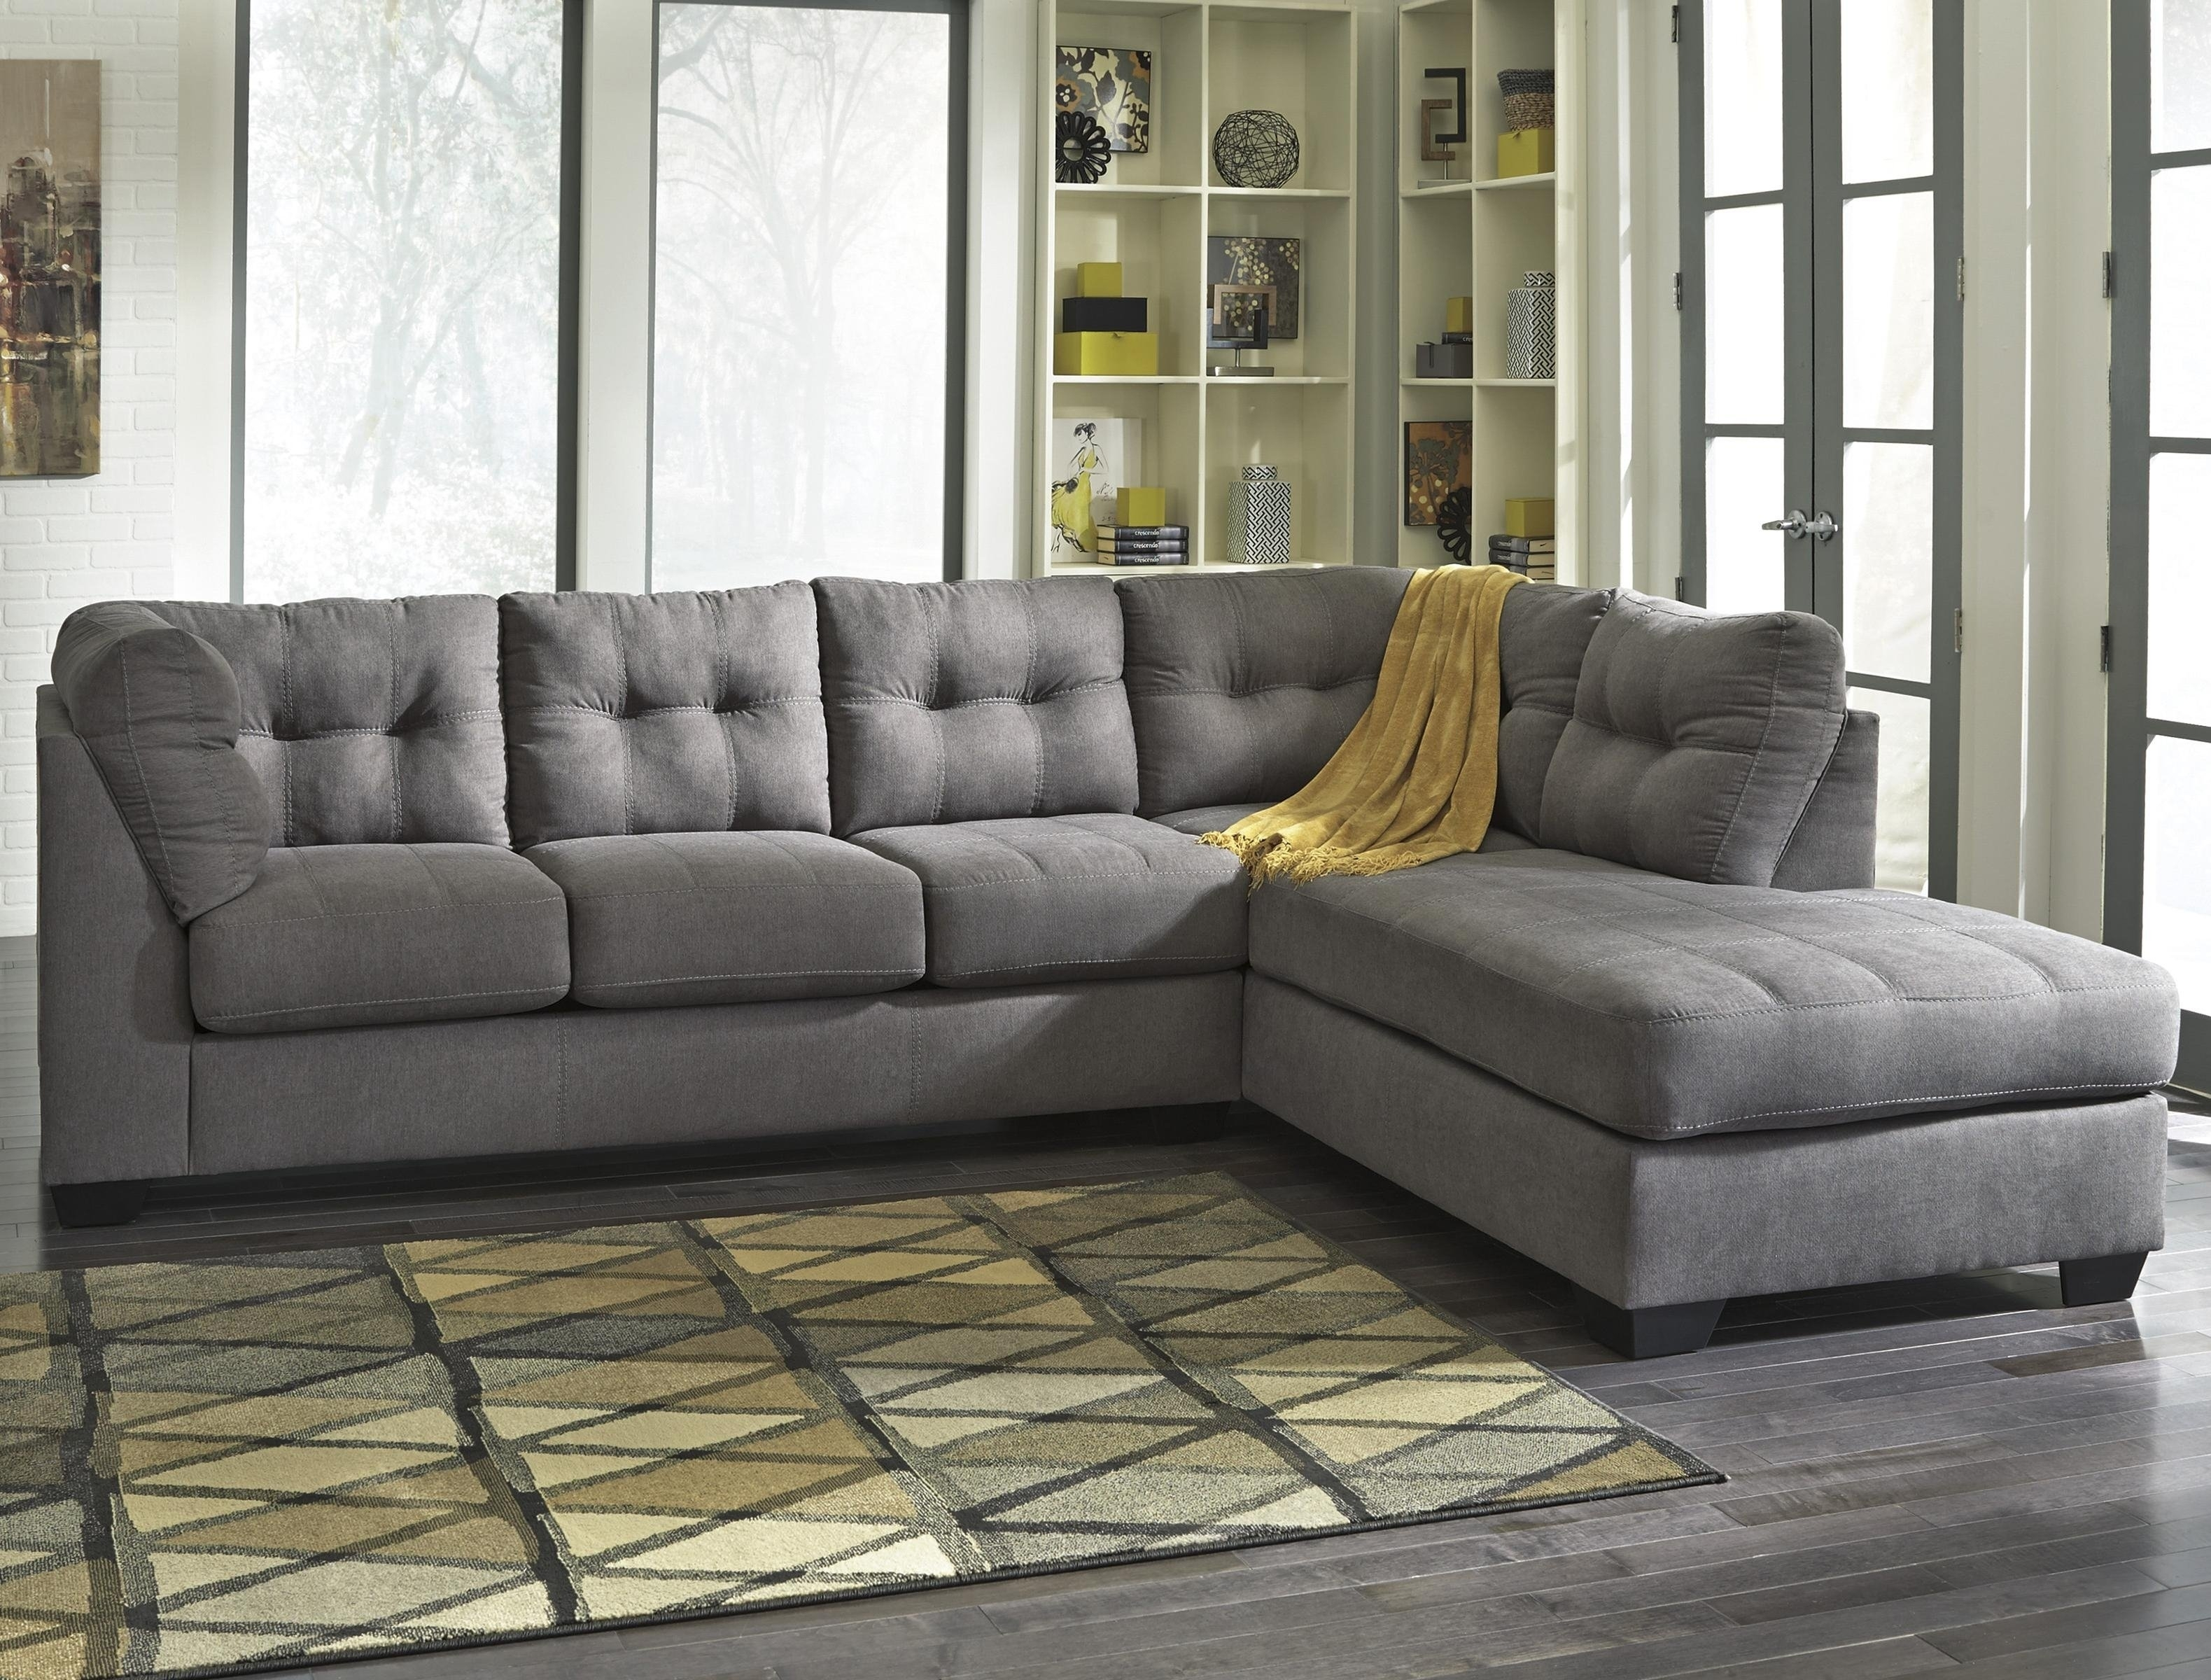 Two Piece Sectional Sofa With Chaise | Home And Textiles in Evan 2 Piece Sectionals With Raf Chaise (Image 30 of 30)